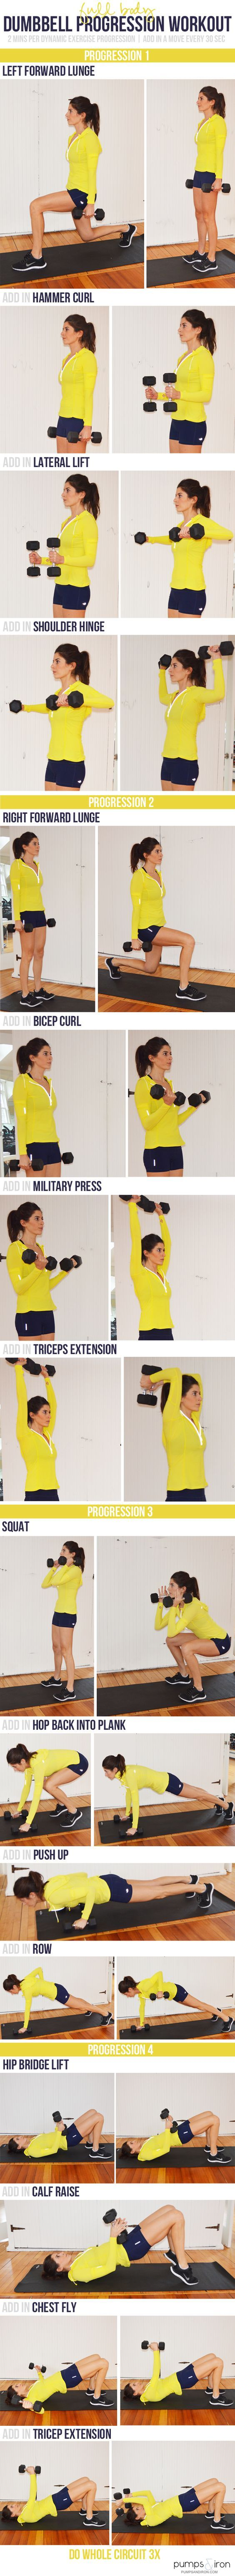 Full-Body Dumbbell Workout -- takes under 30 minutes to complete Body pump. http://pumpsandiron.com/2015/04/08/dumbbell-progression-workout/